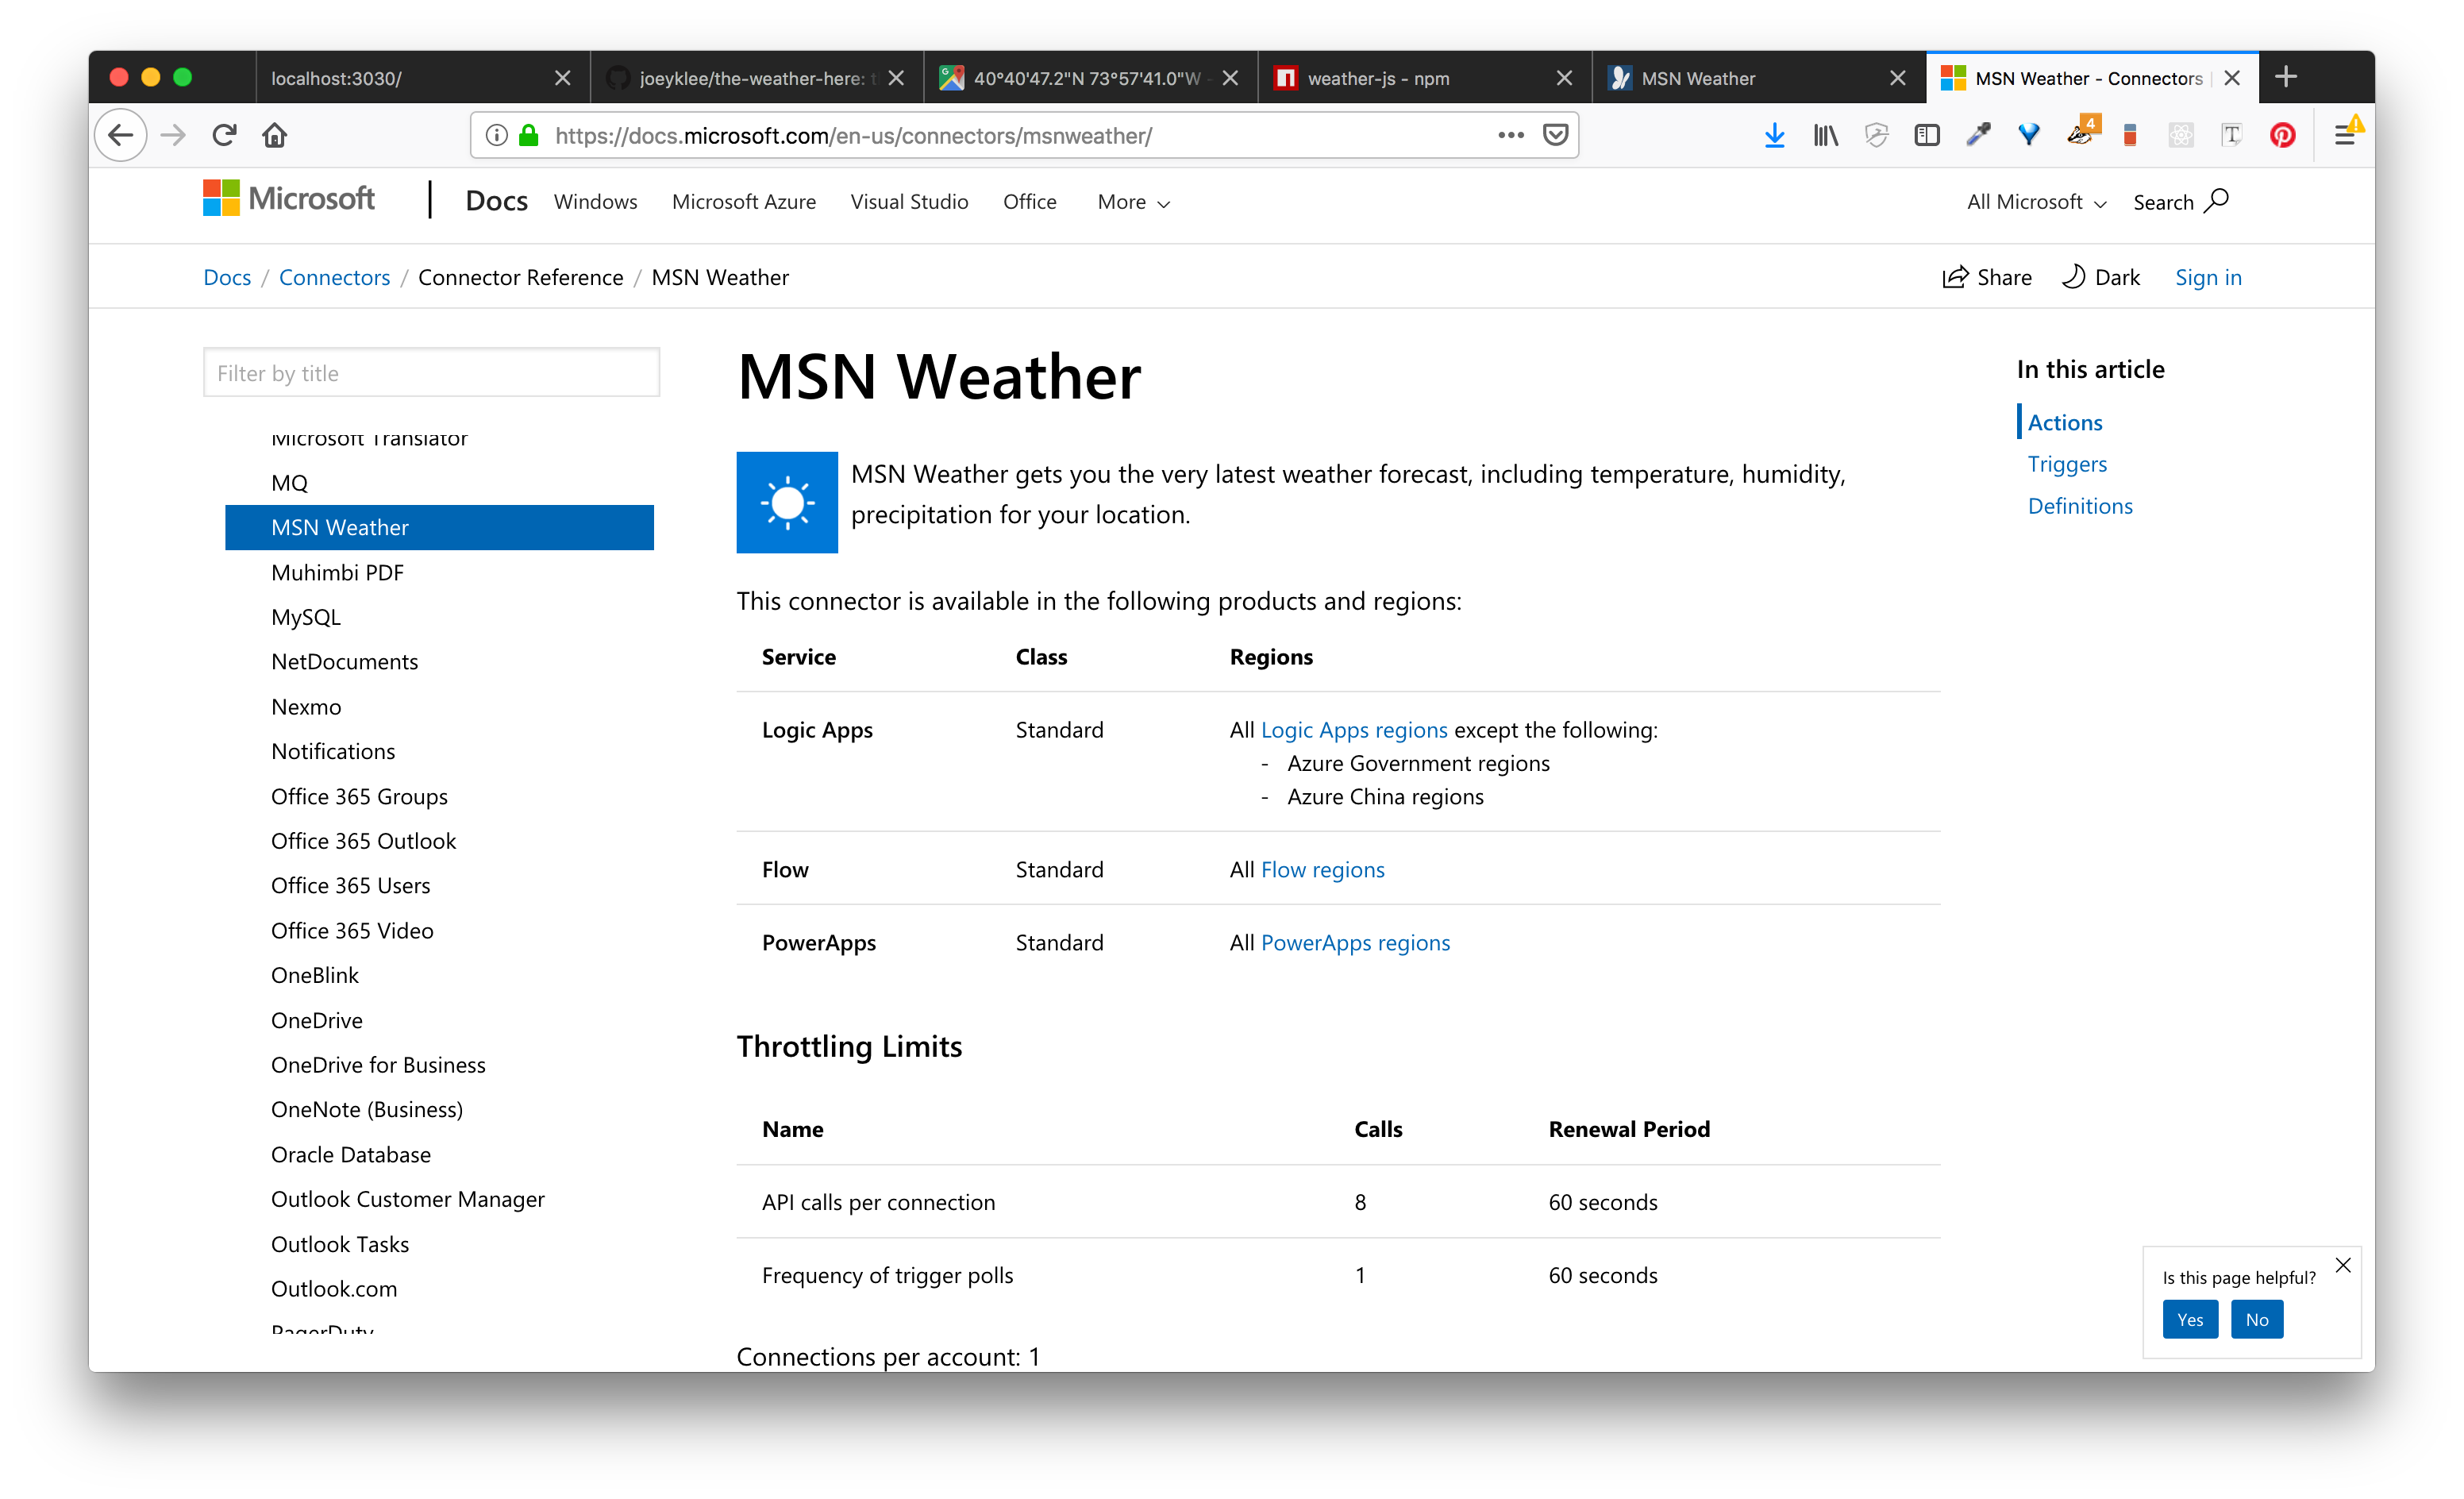 weather-js msn weather data